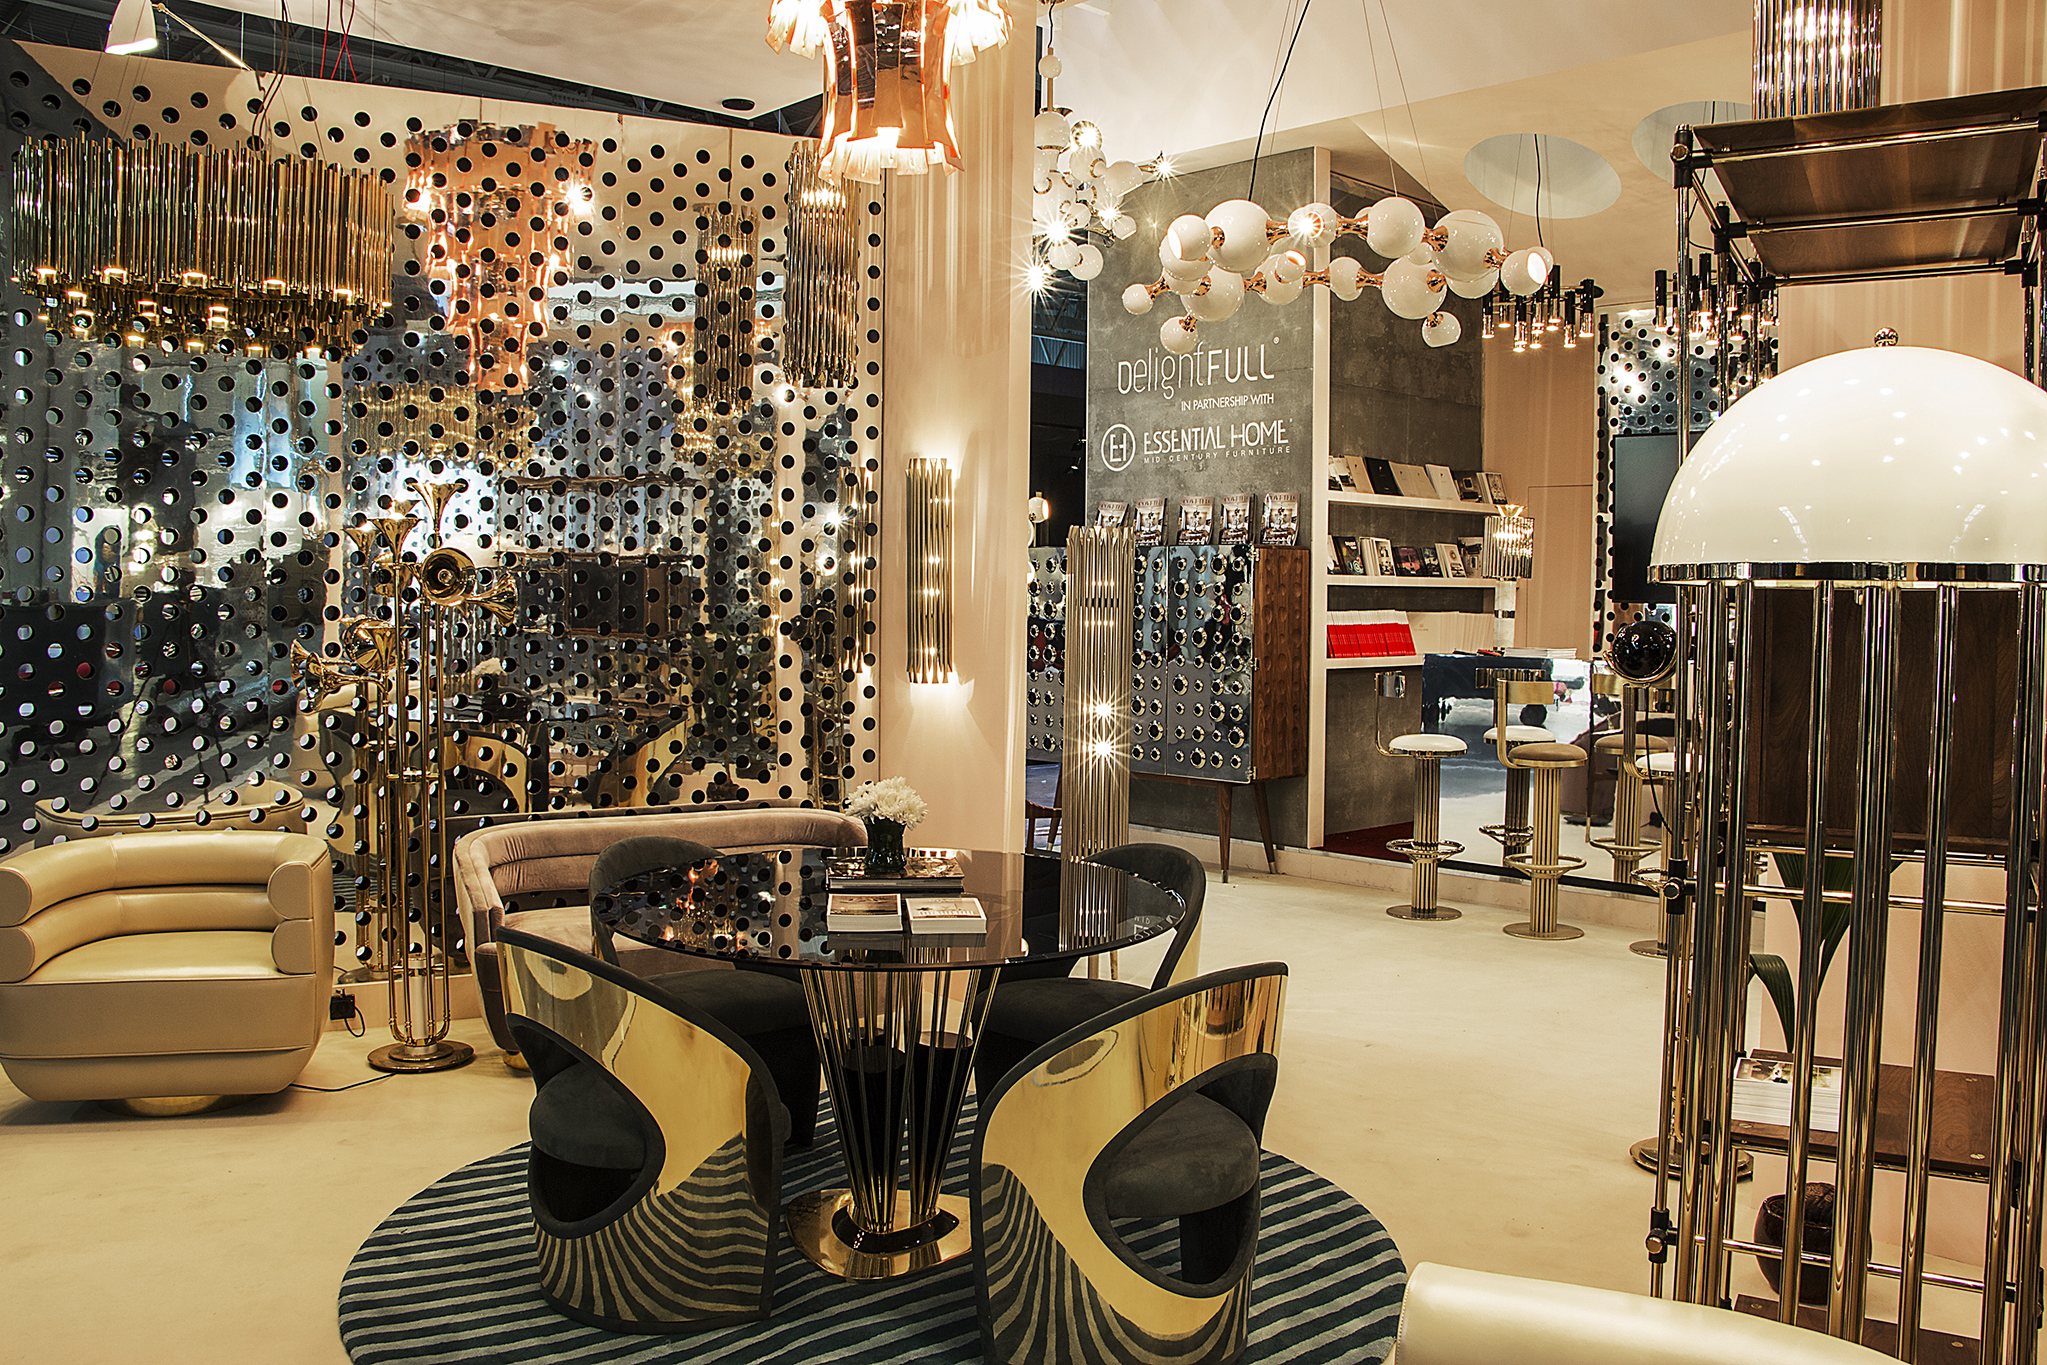 THE FIRST DAY OF DELIGHTFULL AT MAISON ET OBJET PARIS \'16